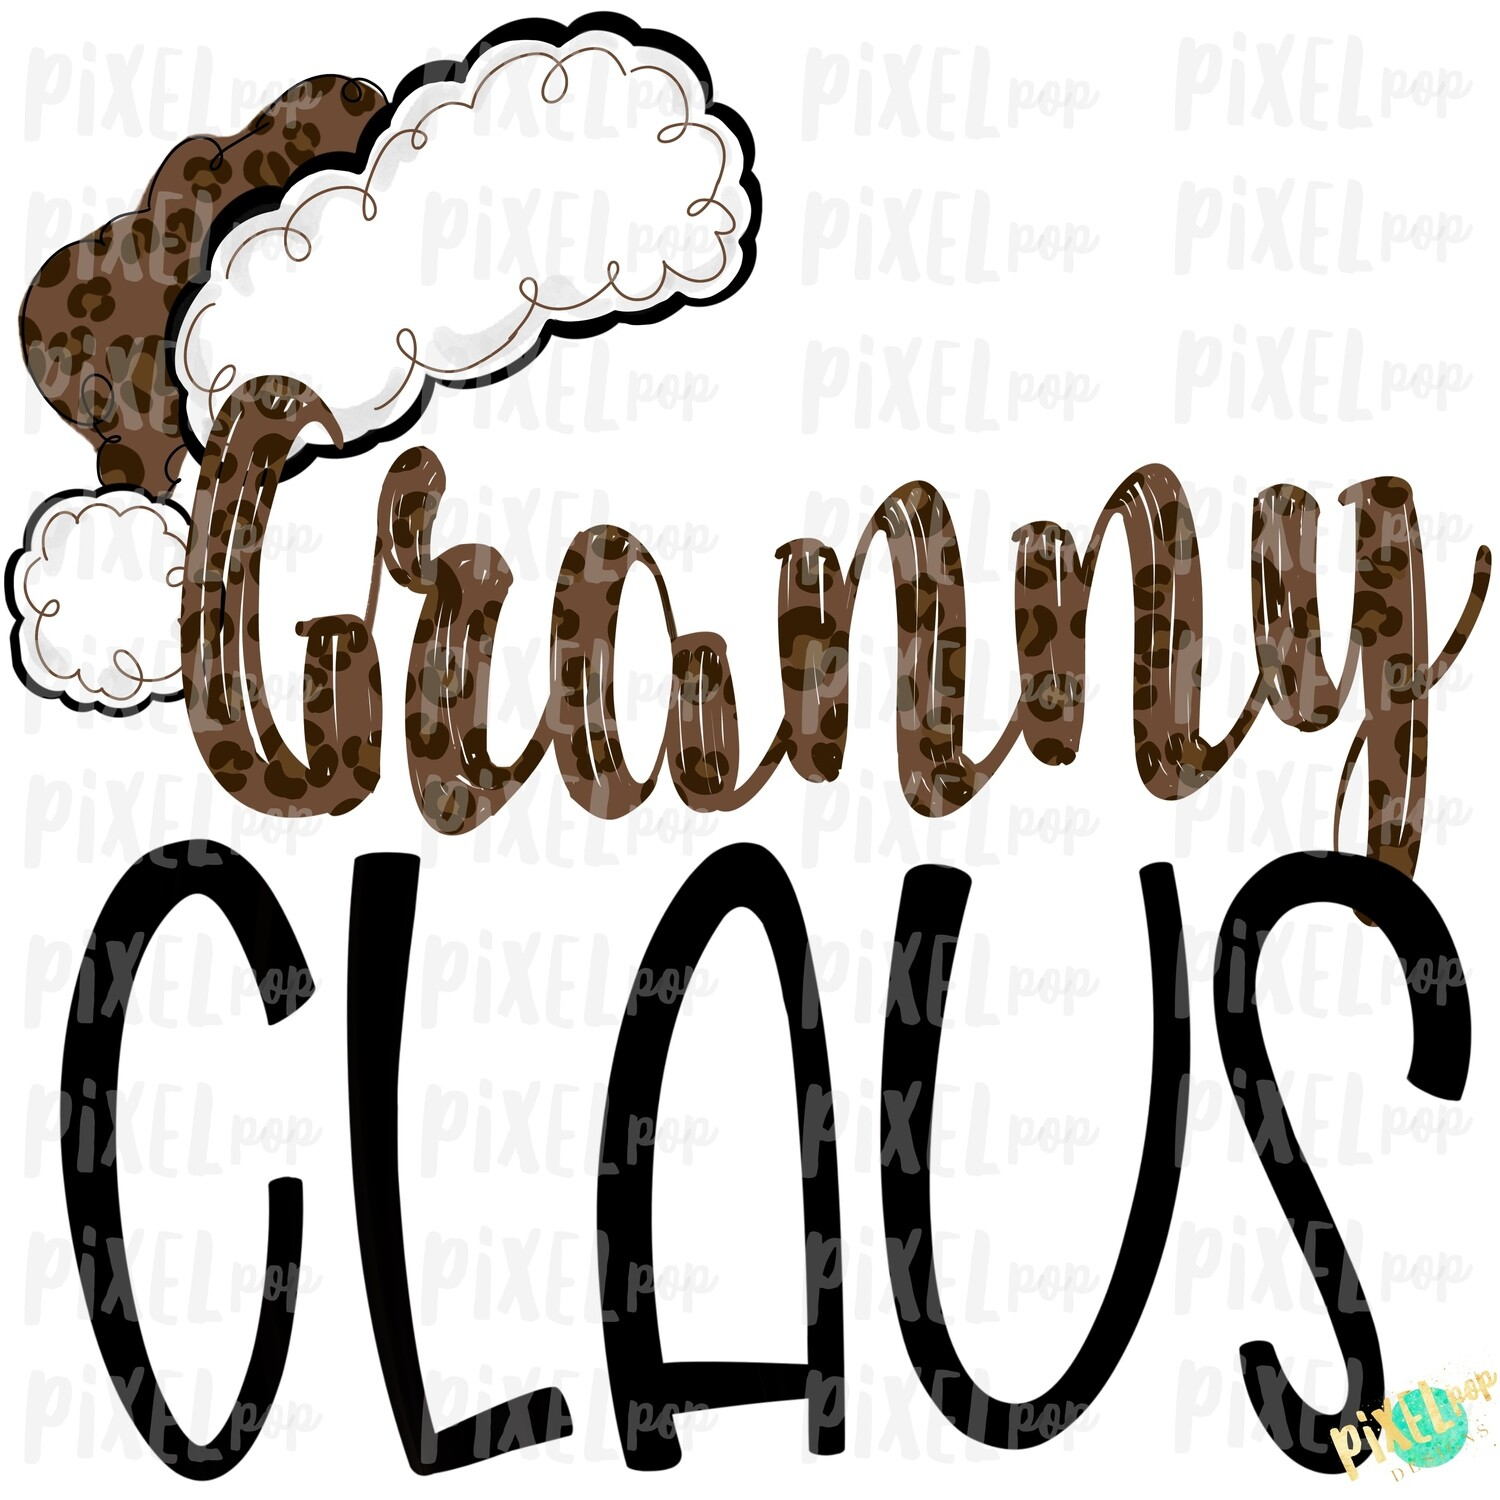 Granny Claus Leopard Santa Digital Watercolor Sublimation PNG | Drawn Design | Sublimation PNG | Digital Download | Printable Artwork | Art